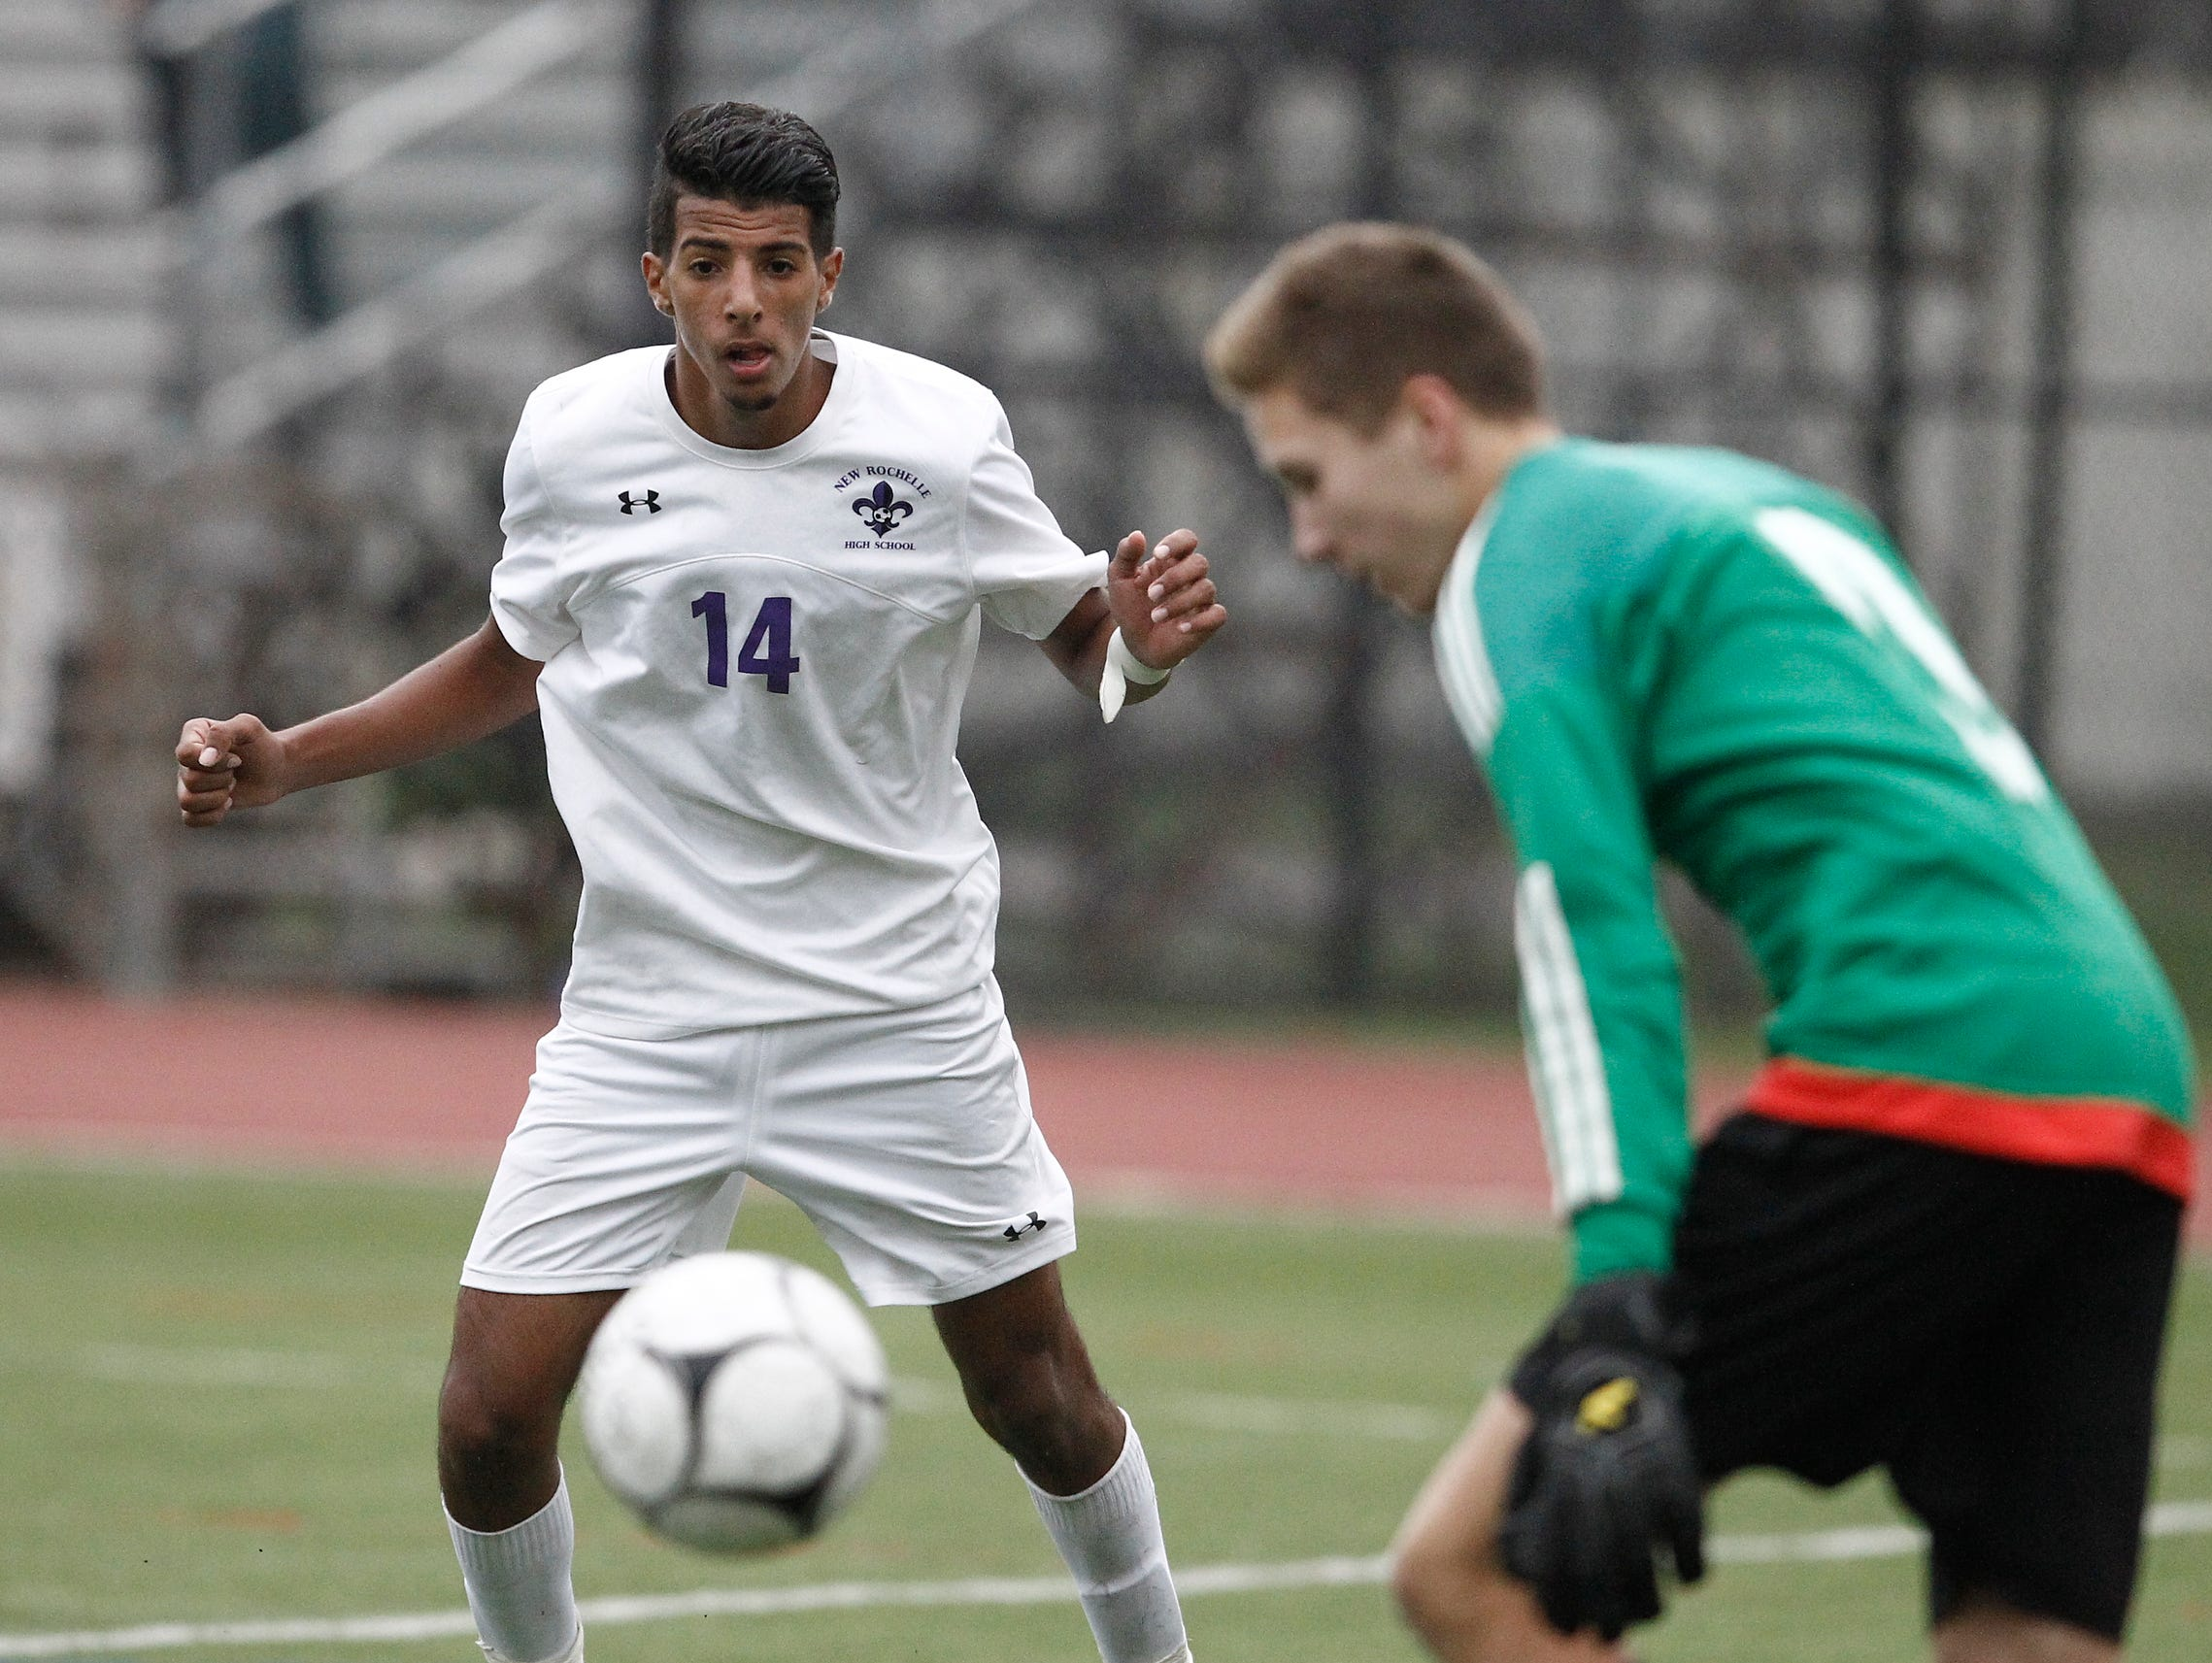 New Rochelle's Harwan Alzuabidi looks for a rebound during the Huguenots' 2-0 win over Mahopac in the first round of the boys soccer Class AA playoffs at New Rochelle High School in New Rochelle on Thursday. Alzuabidi scored both goals.